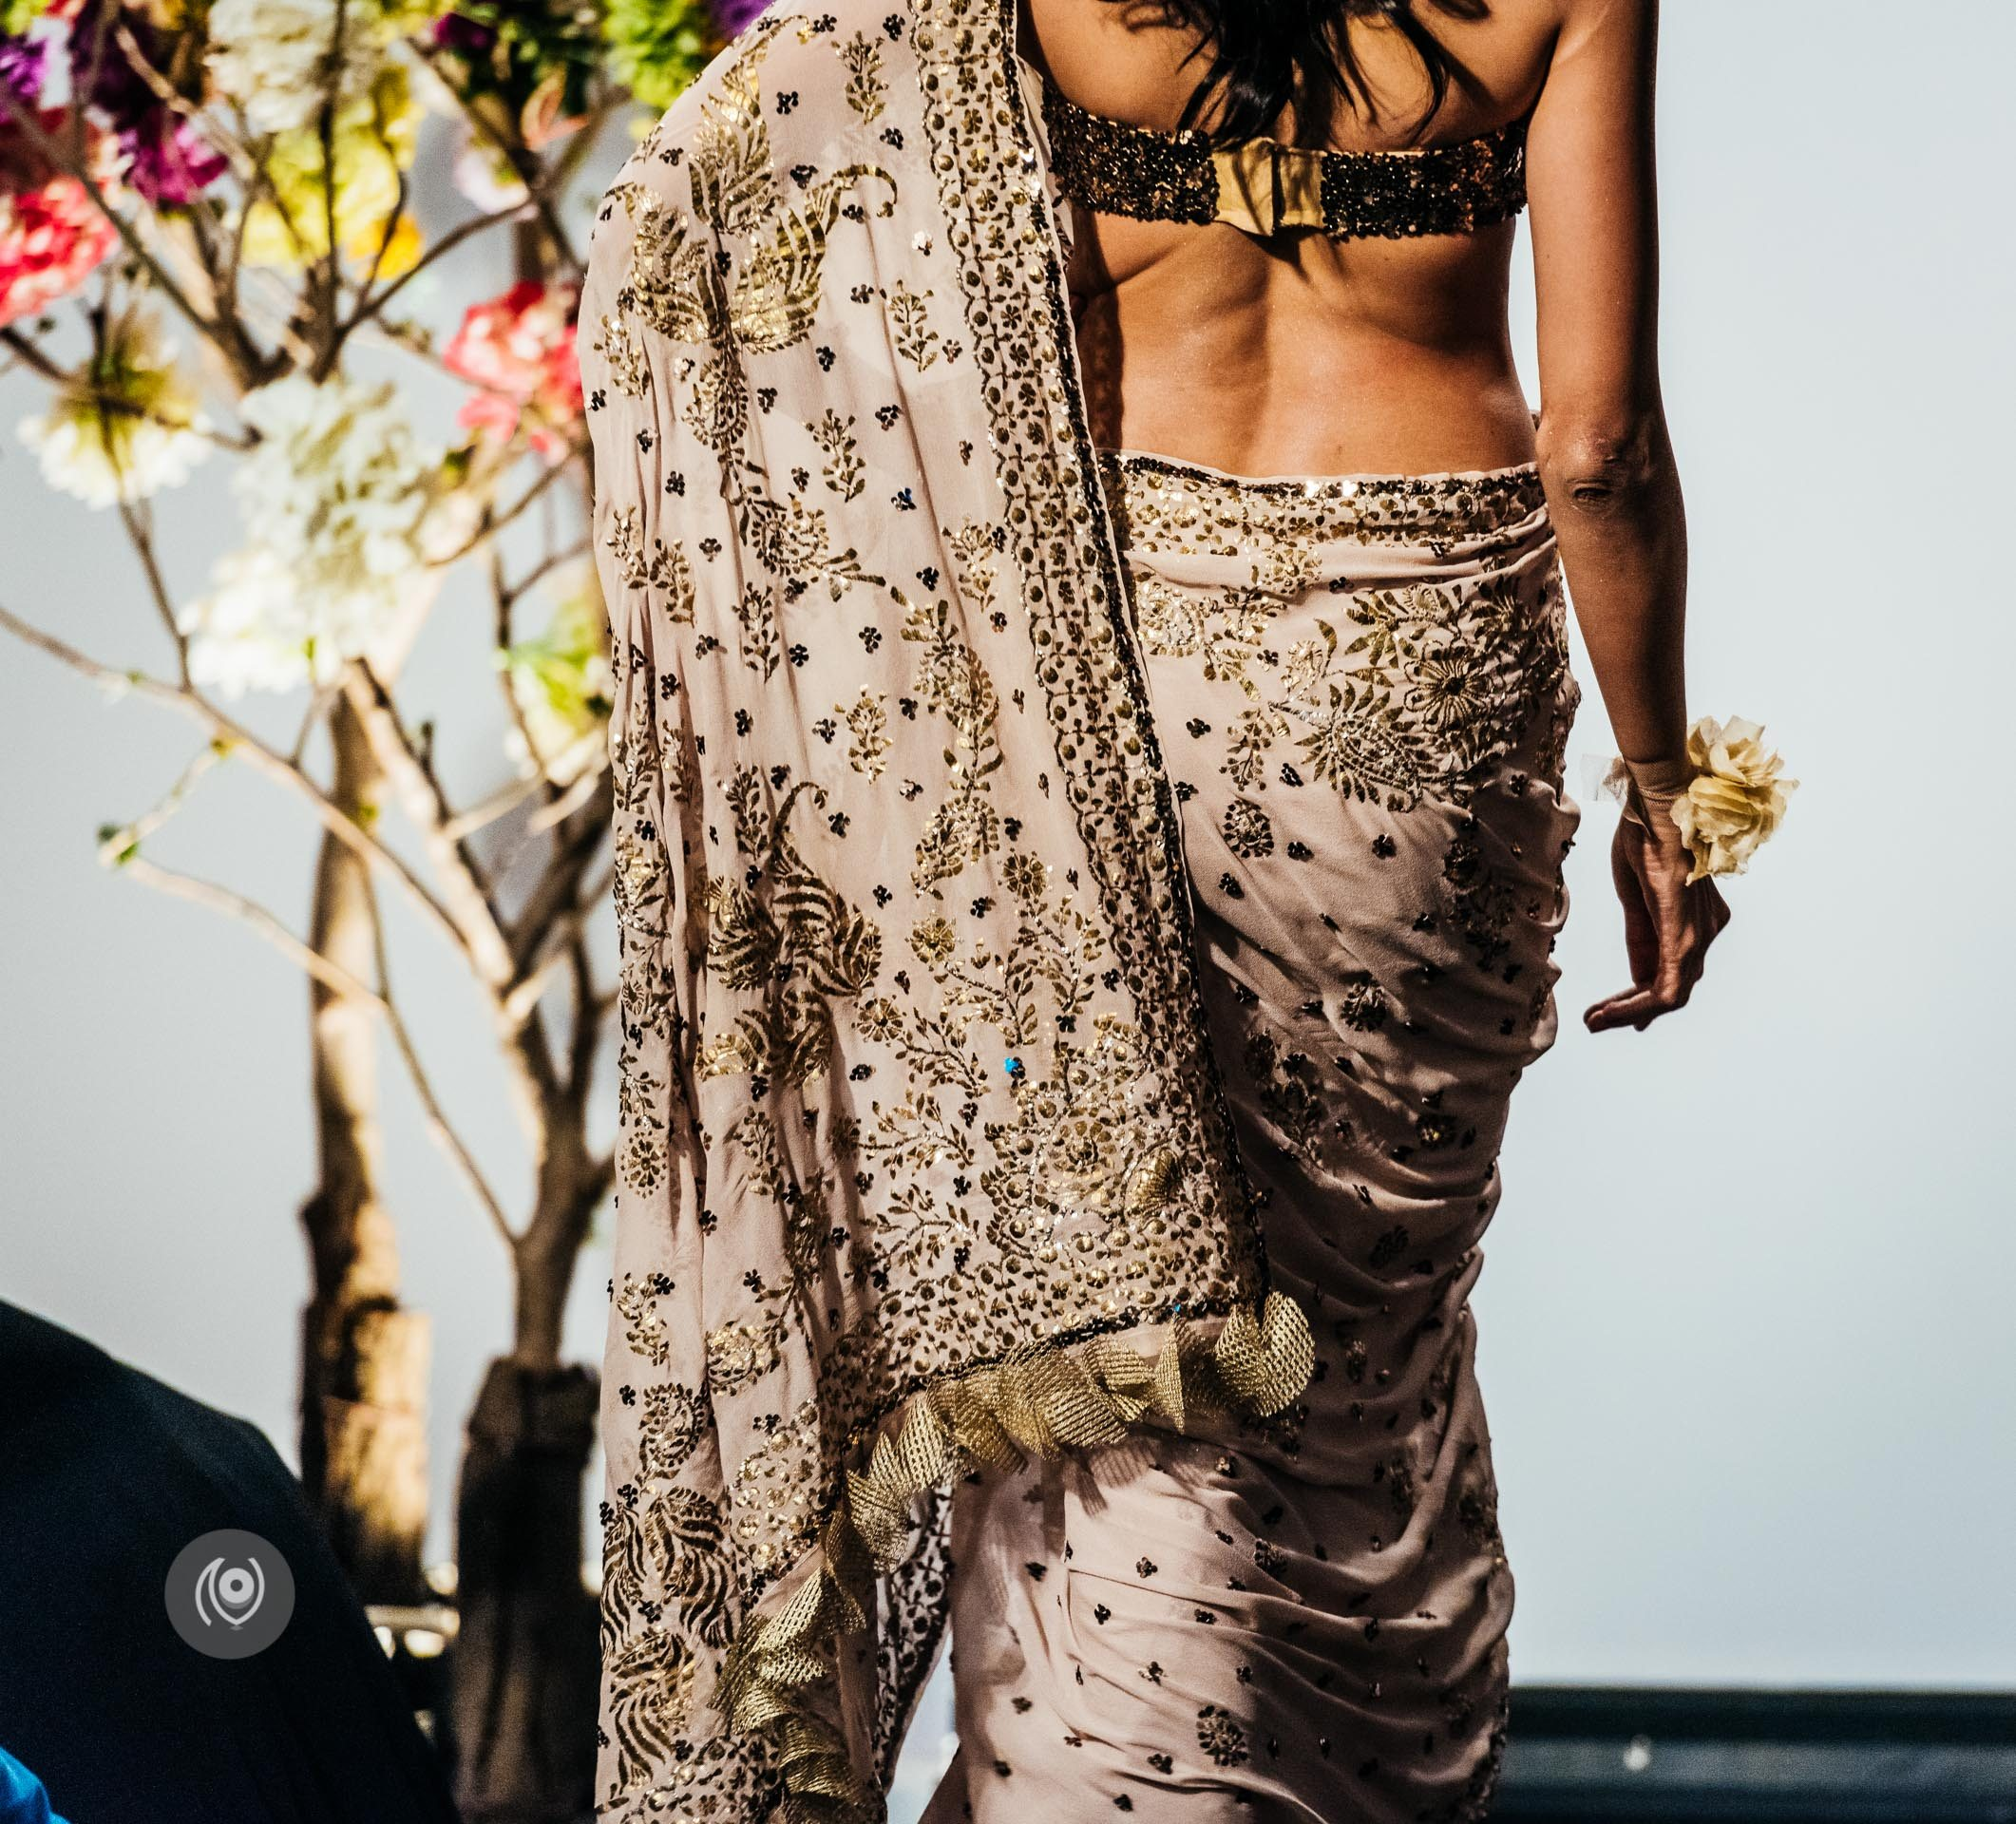 #SwarovskiCrystals Rina Dhaka, BMW India Bridal Fashion Week, #BMWIBFW, Naina.co Luxury & Lifestyle, Photographer Storyteller, Blogger #SwarovskiCouture